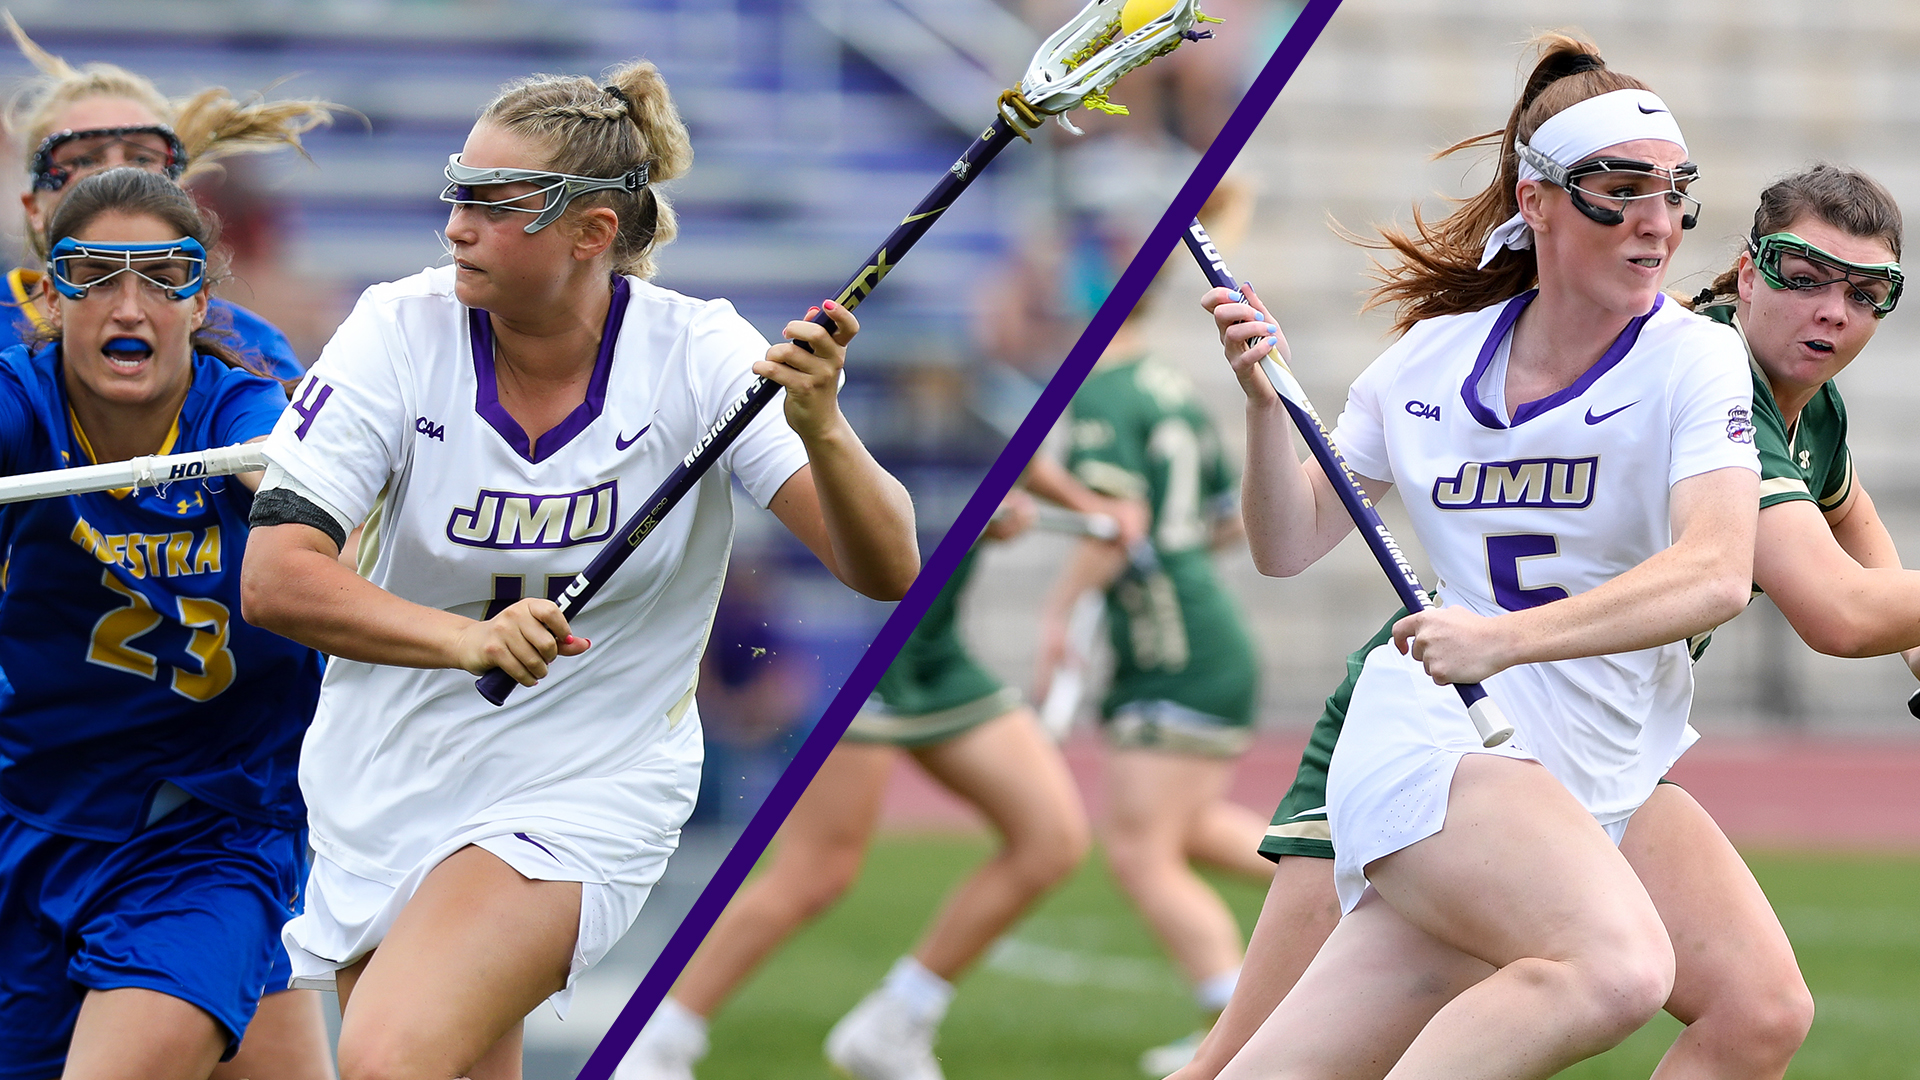 Lacrosse: Haven, Quinlan Named to 2019 IWLCA Senior All-Star Game